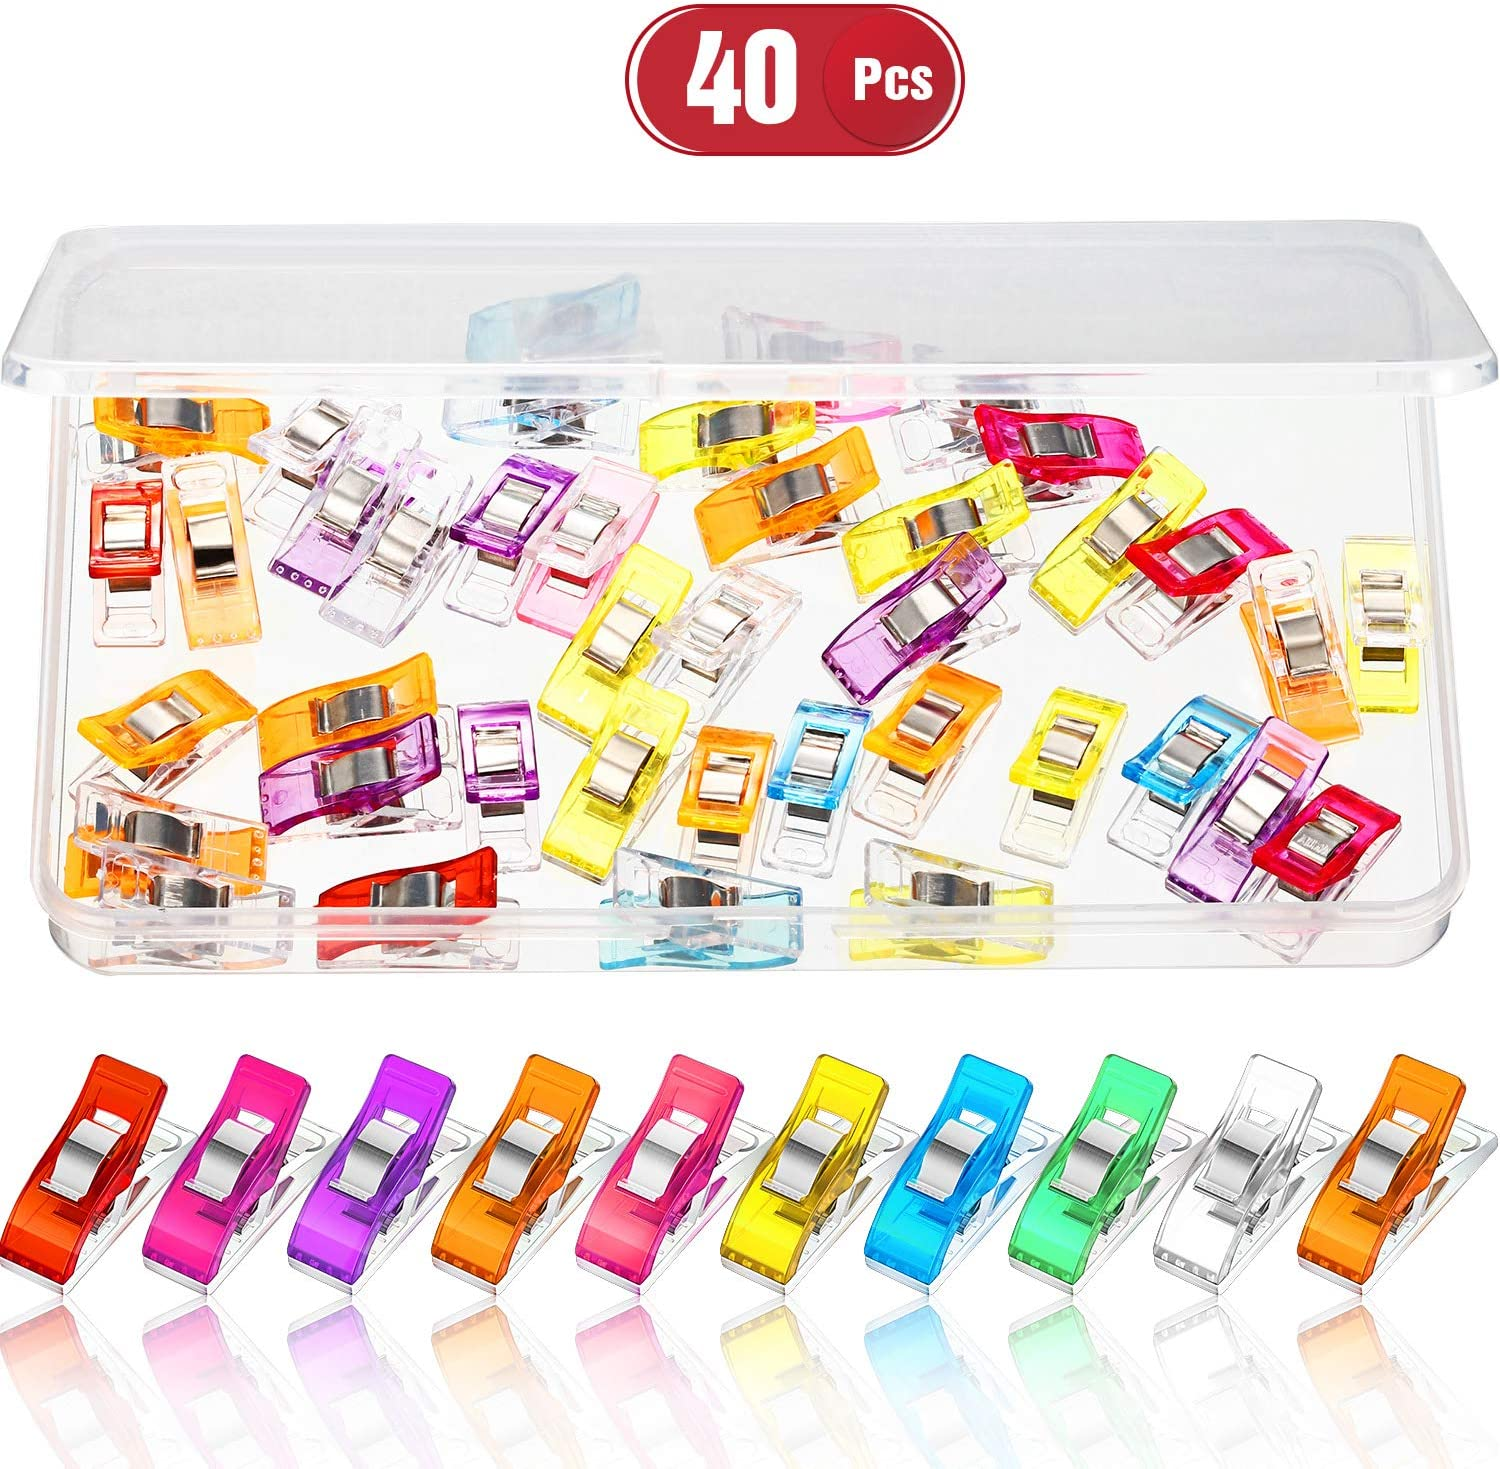 40 Pieces Multipurpose Sewing Clips Colorful Sewing Quilting Fabric Clips Plastic Binding Clips Craft Quilting Clips Sewing Clamps with Storage Box for Sewing Quilting Knitting Assorted Colors